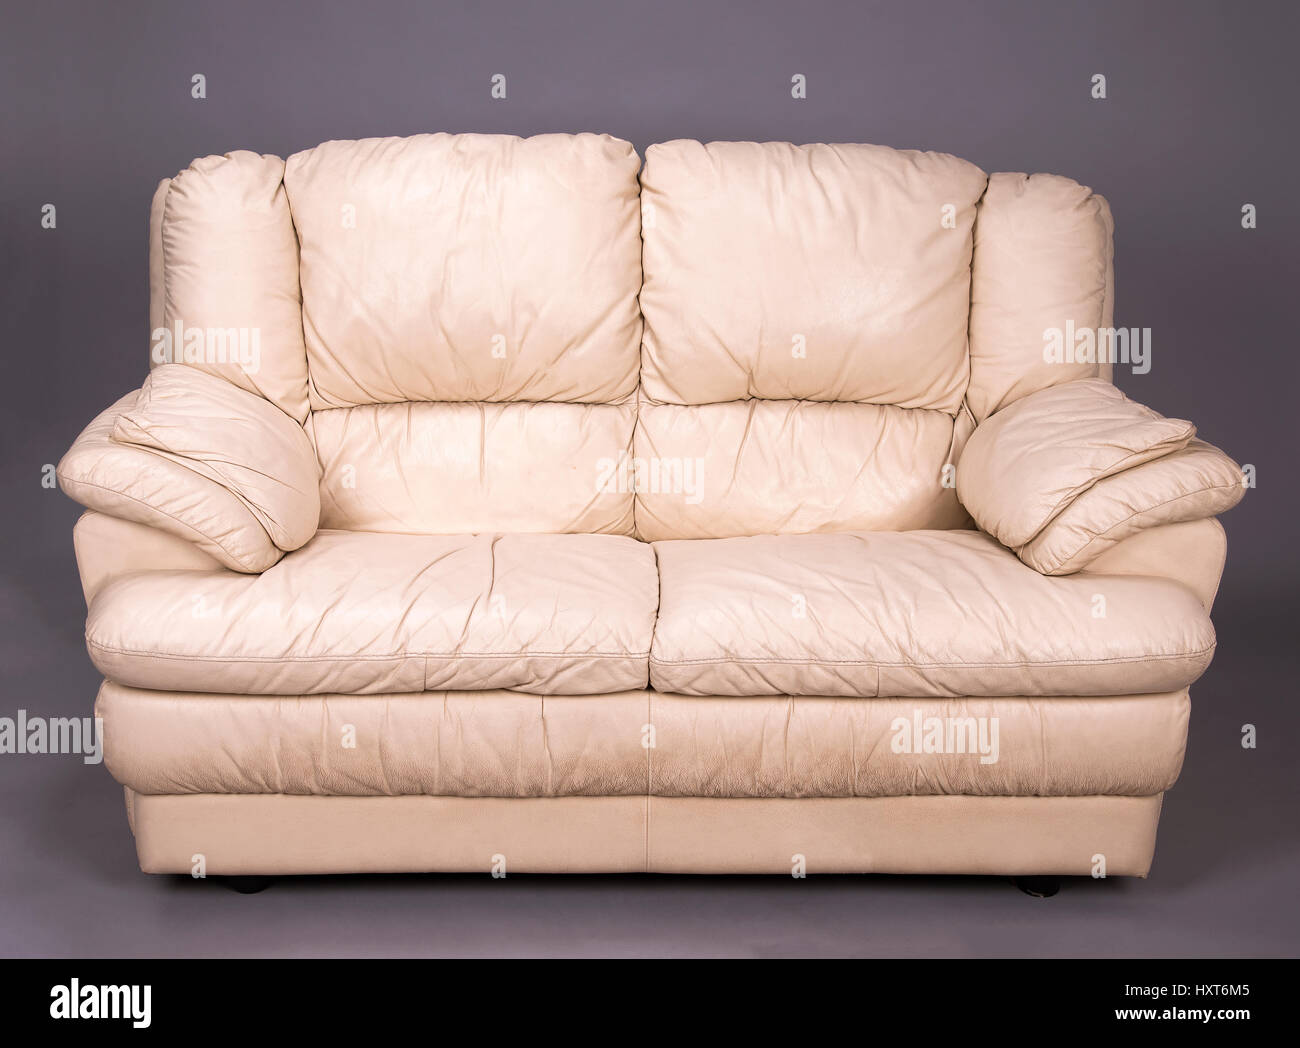 - Cream Sofa High Resolution Stock Photography And Images - Alamy